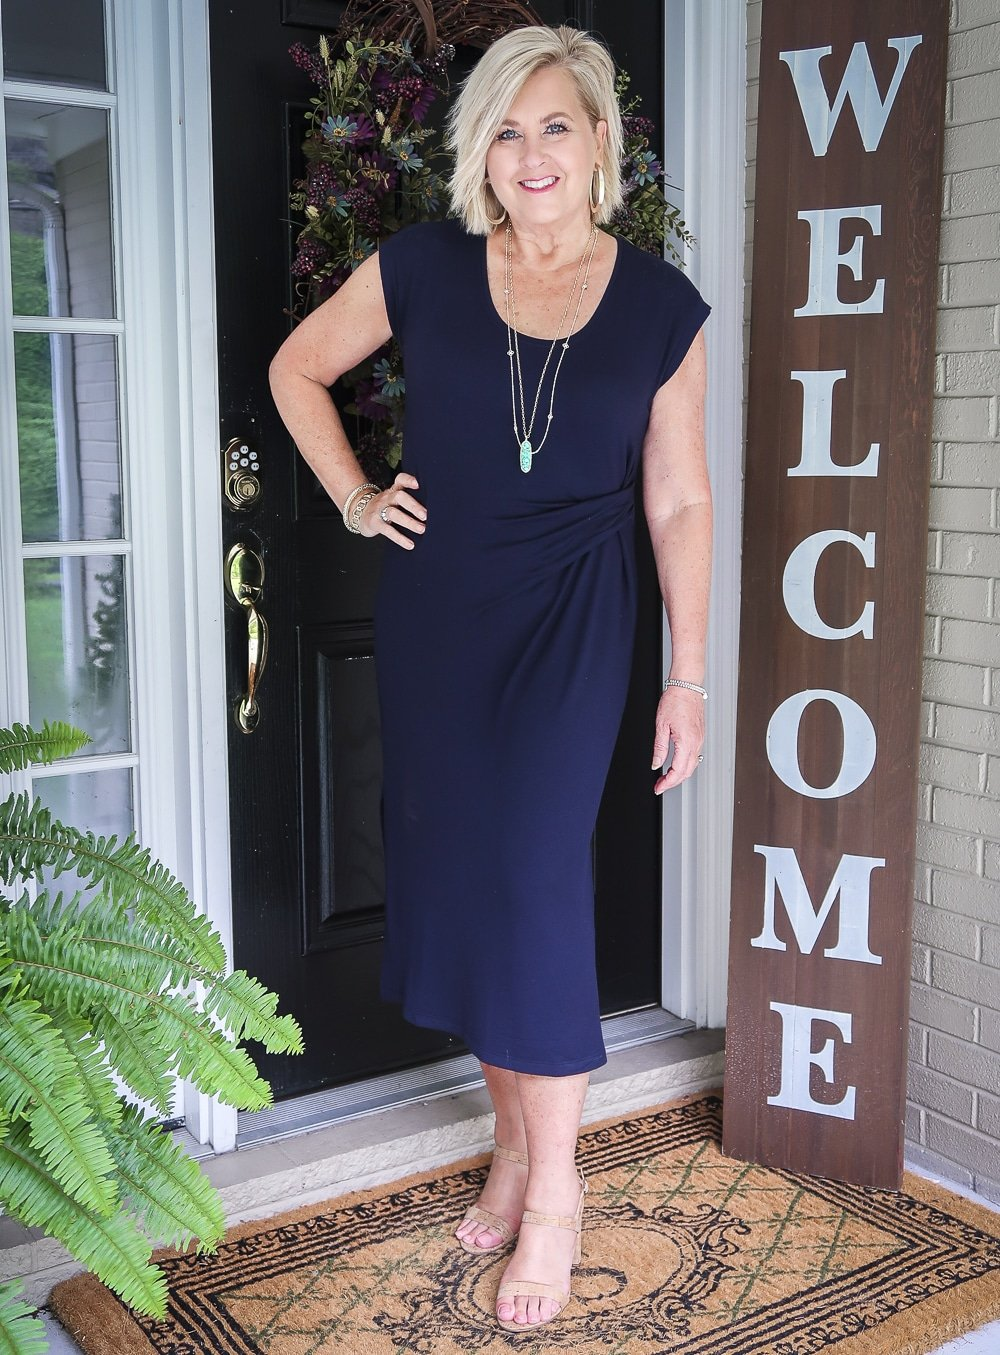 Fashion Blogger 50 Is Not Old is wearing a navy scoop neck midi dress by Lou & Grey with cork heels